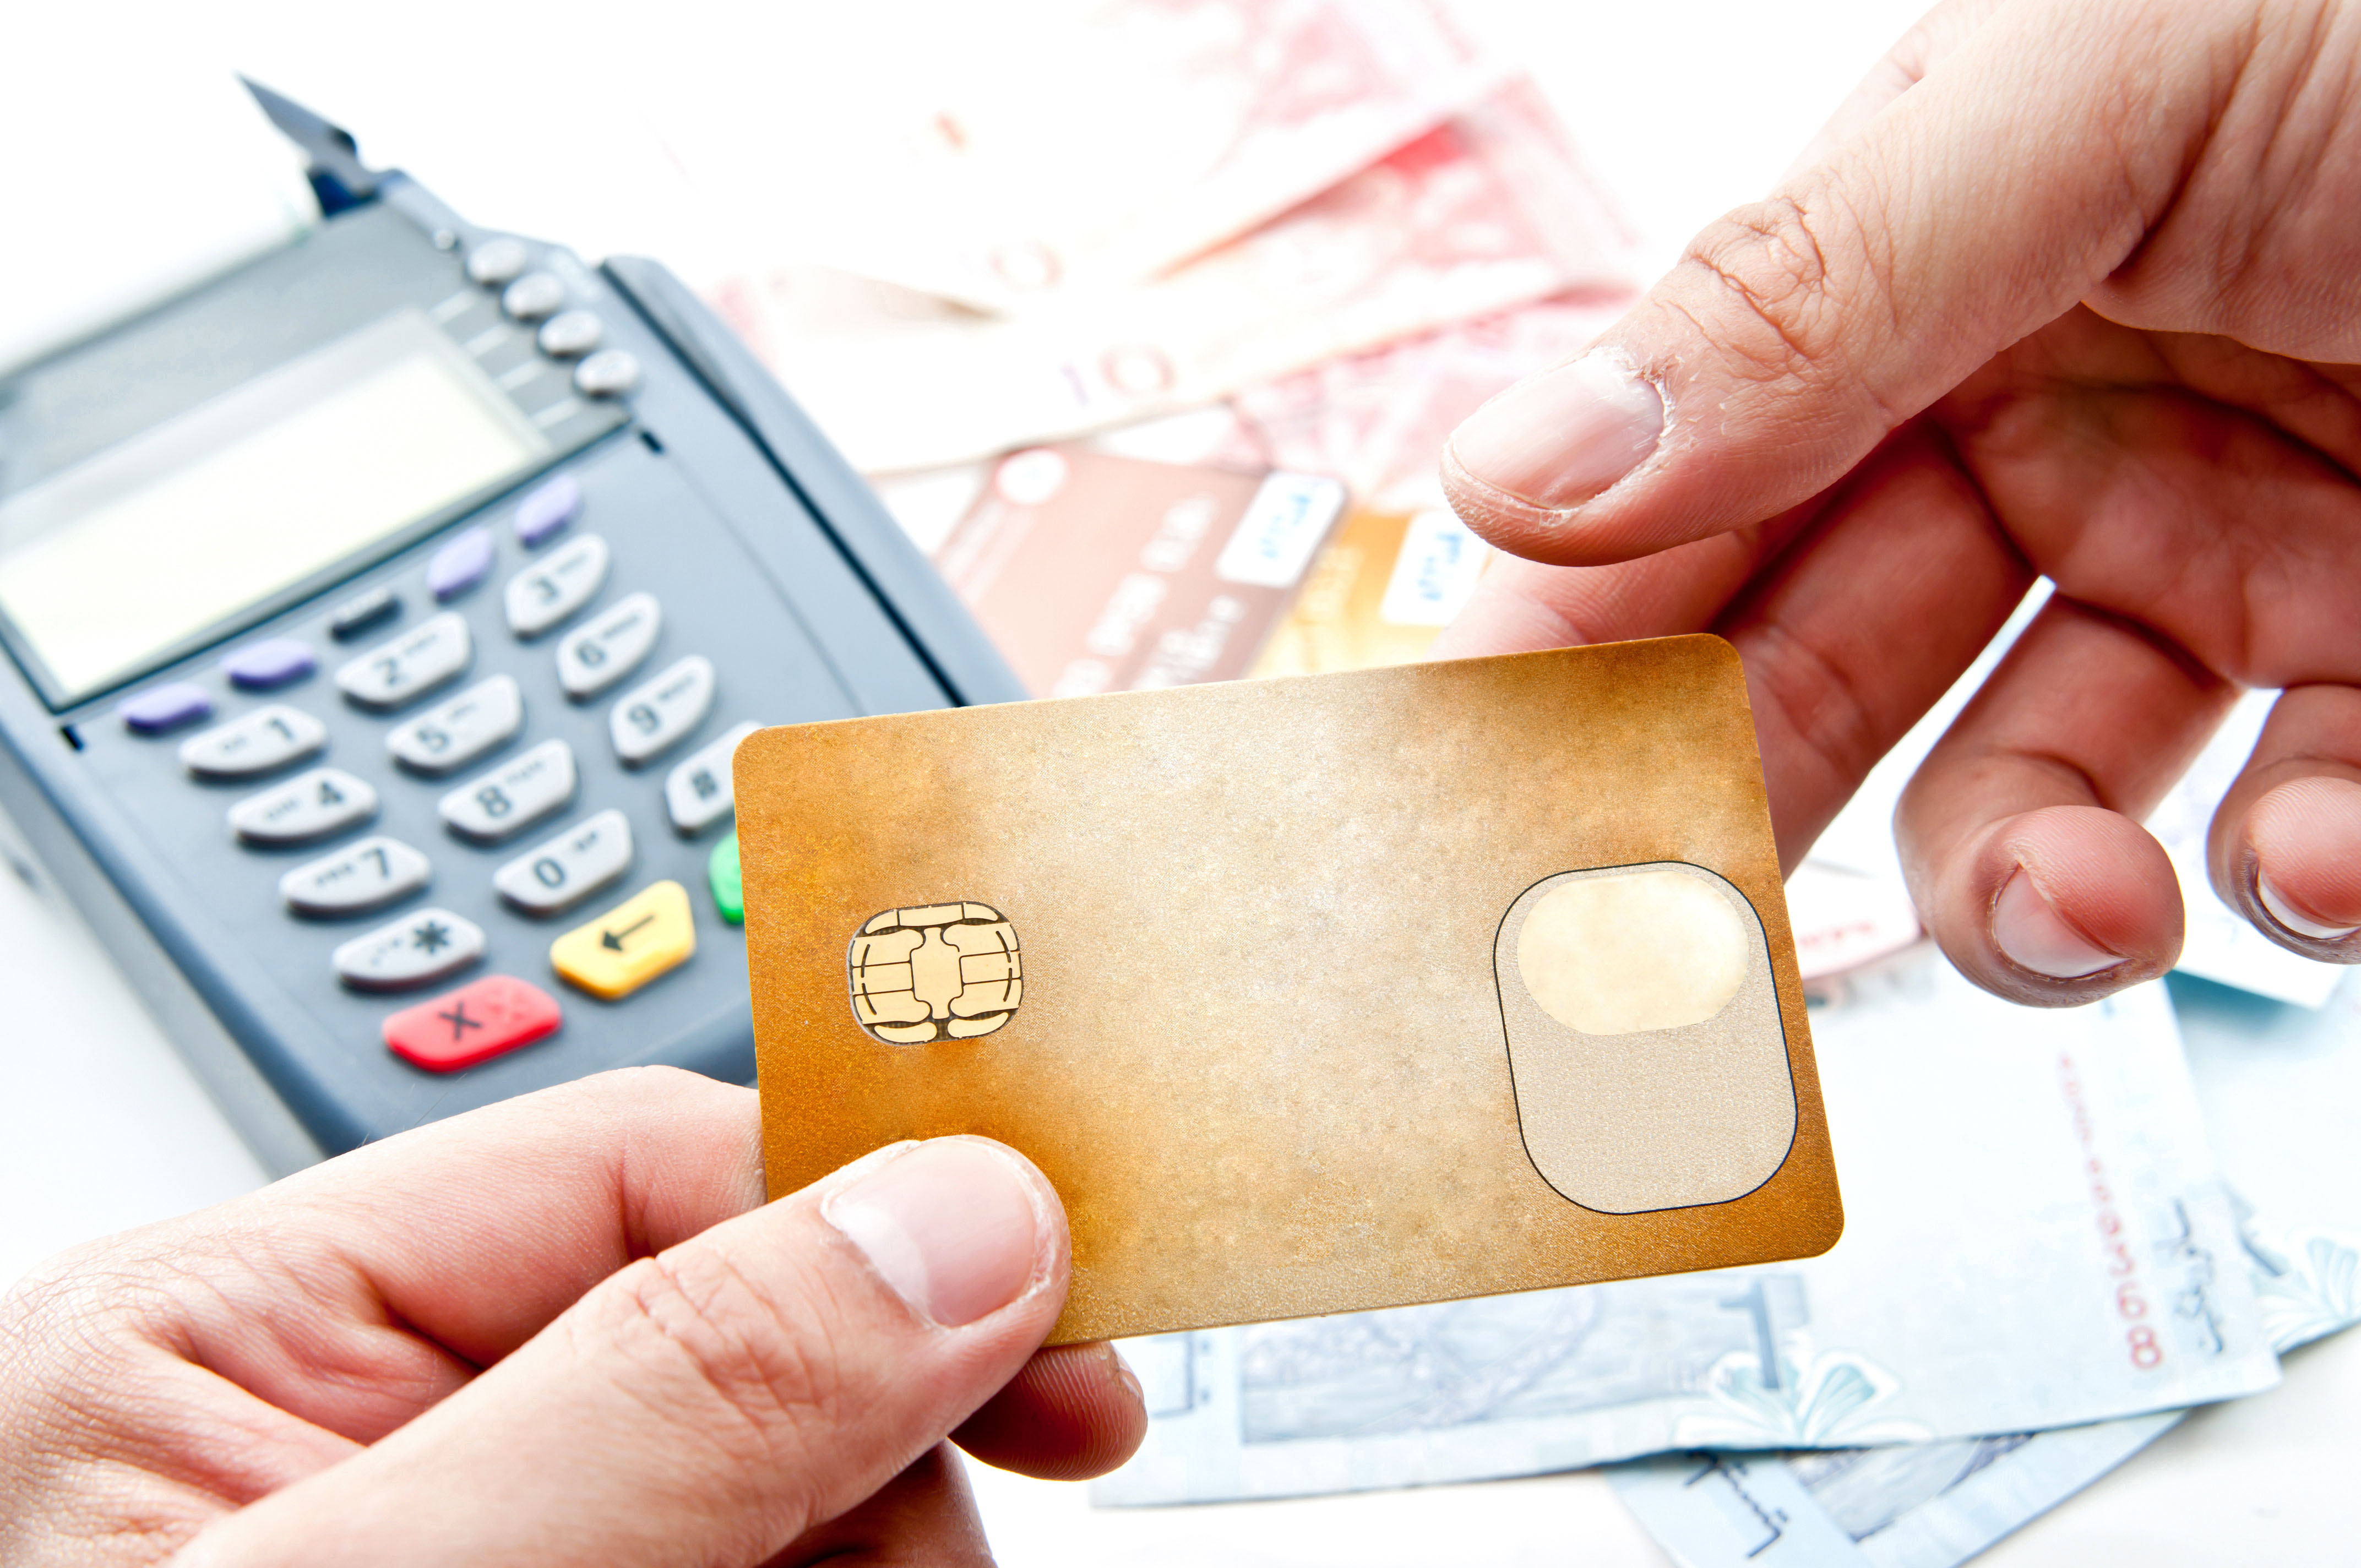 How Fast Payment Technologies Work